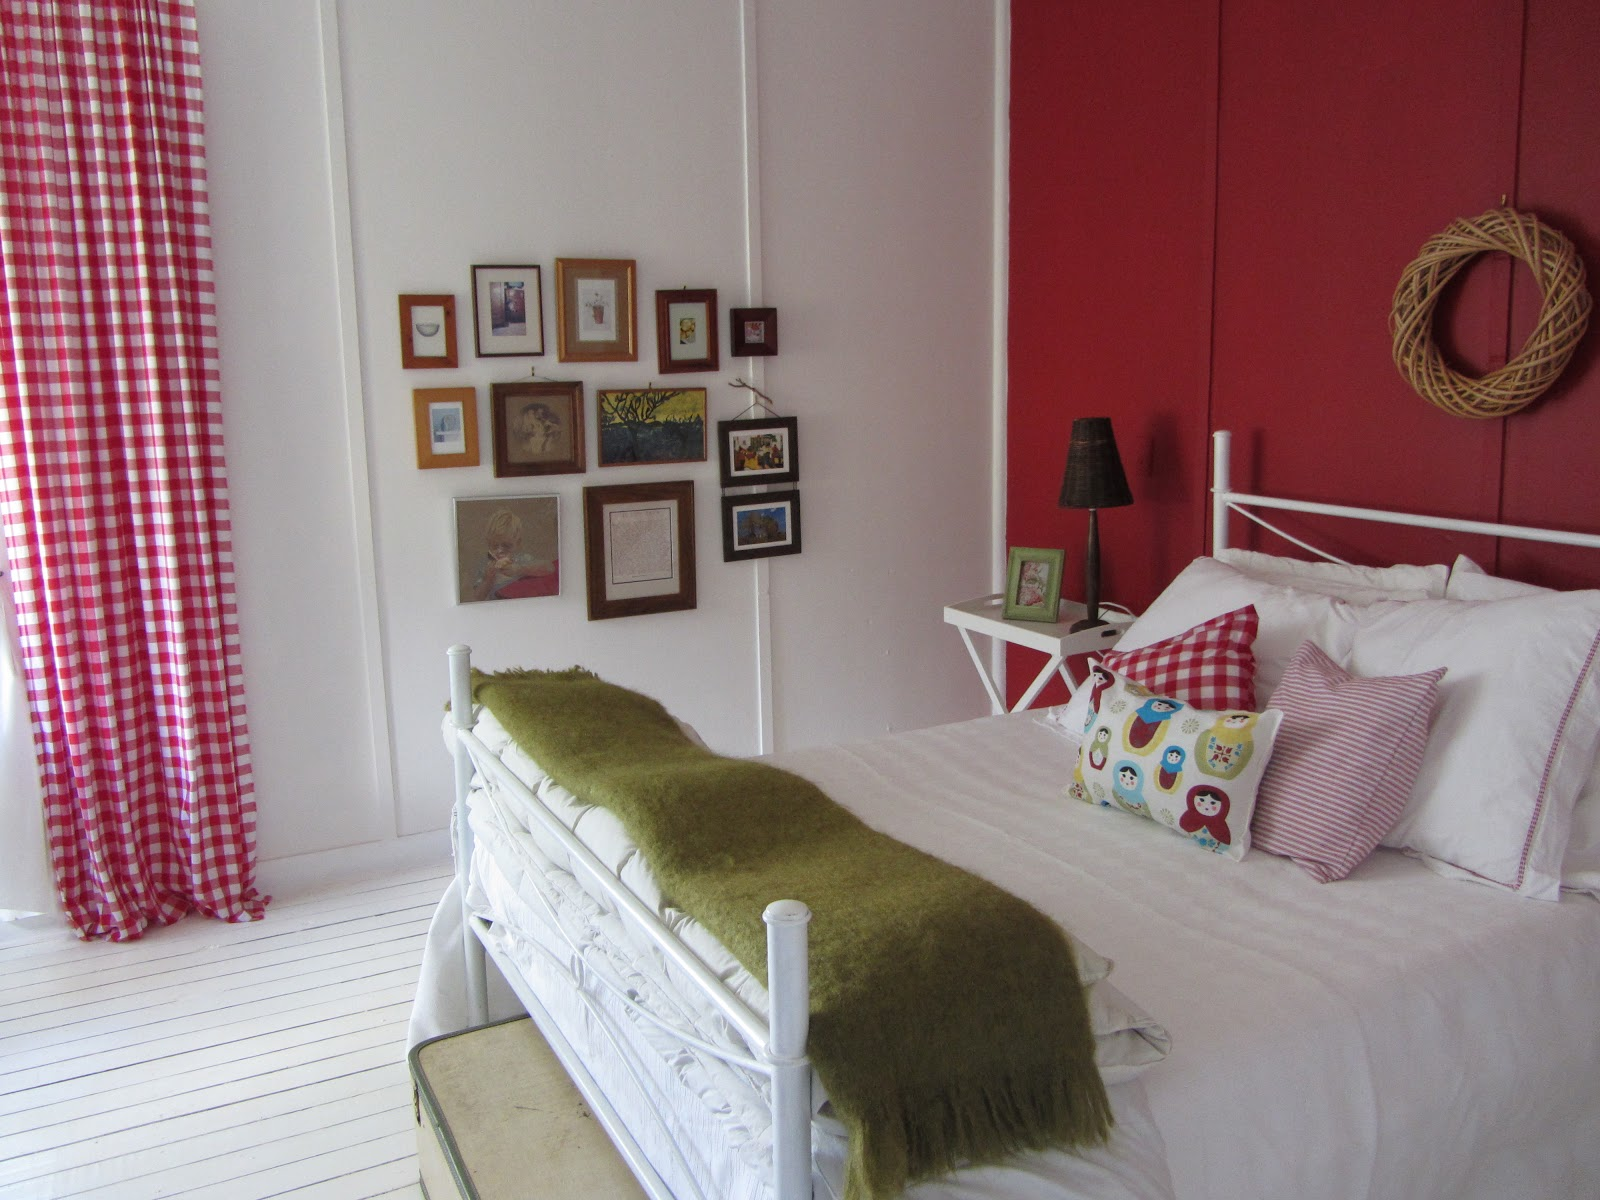 thom haus handmade a cheap and easy bedroom makeover using what